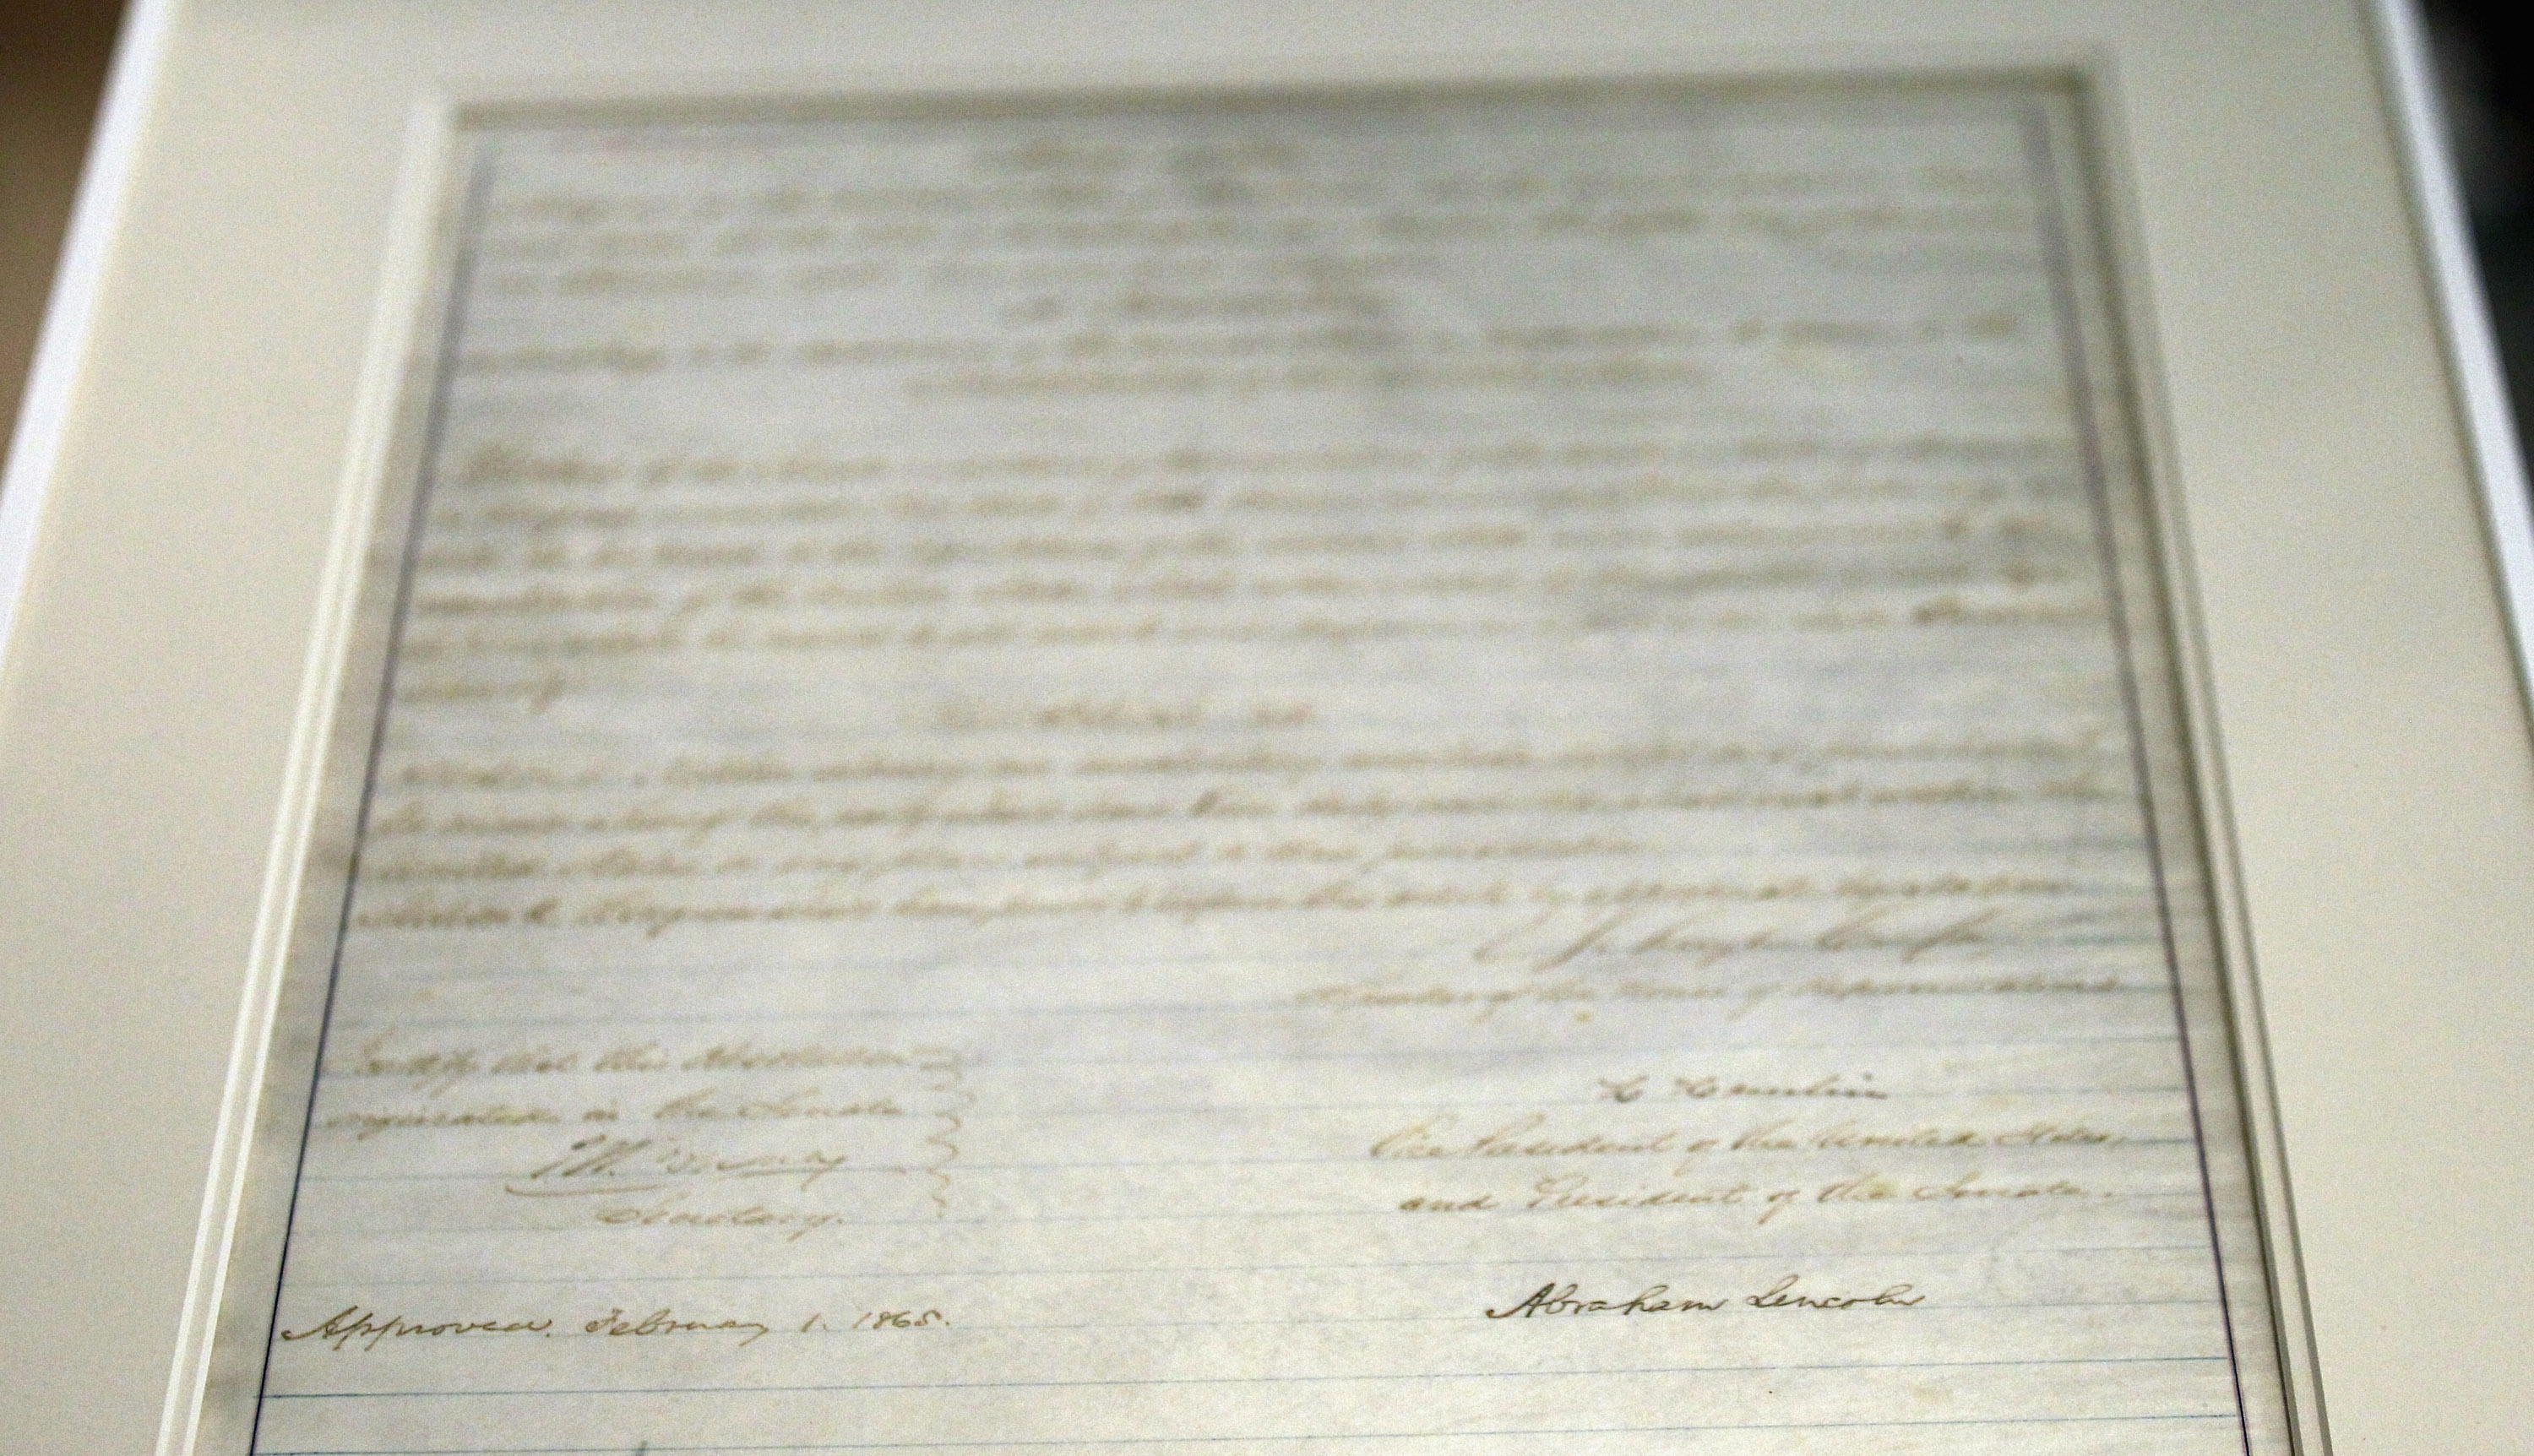 New Trans Am >> 13th Amendment To The US Constitution Full Text: Slavery Ban's 150th Anniversary To Be Marked By ...